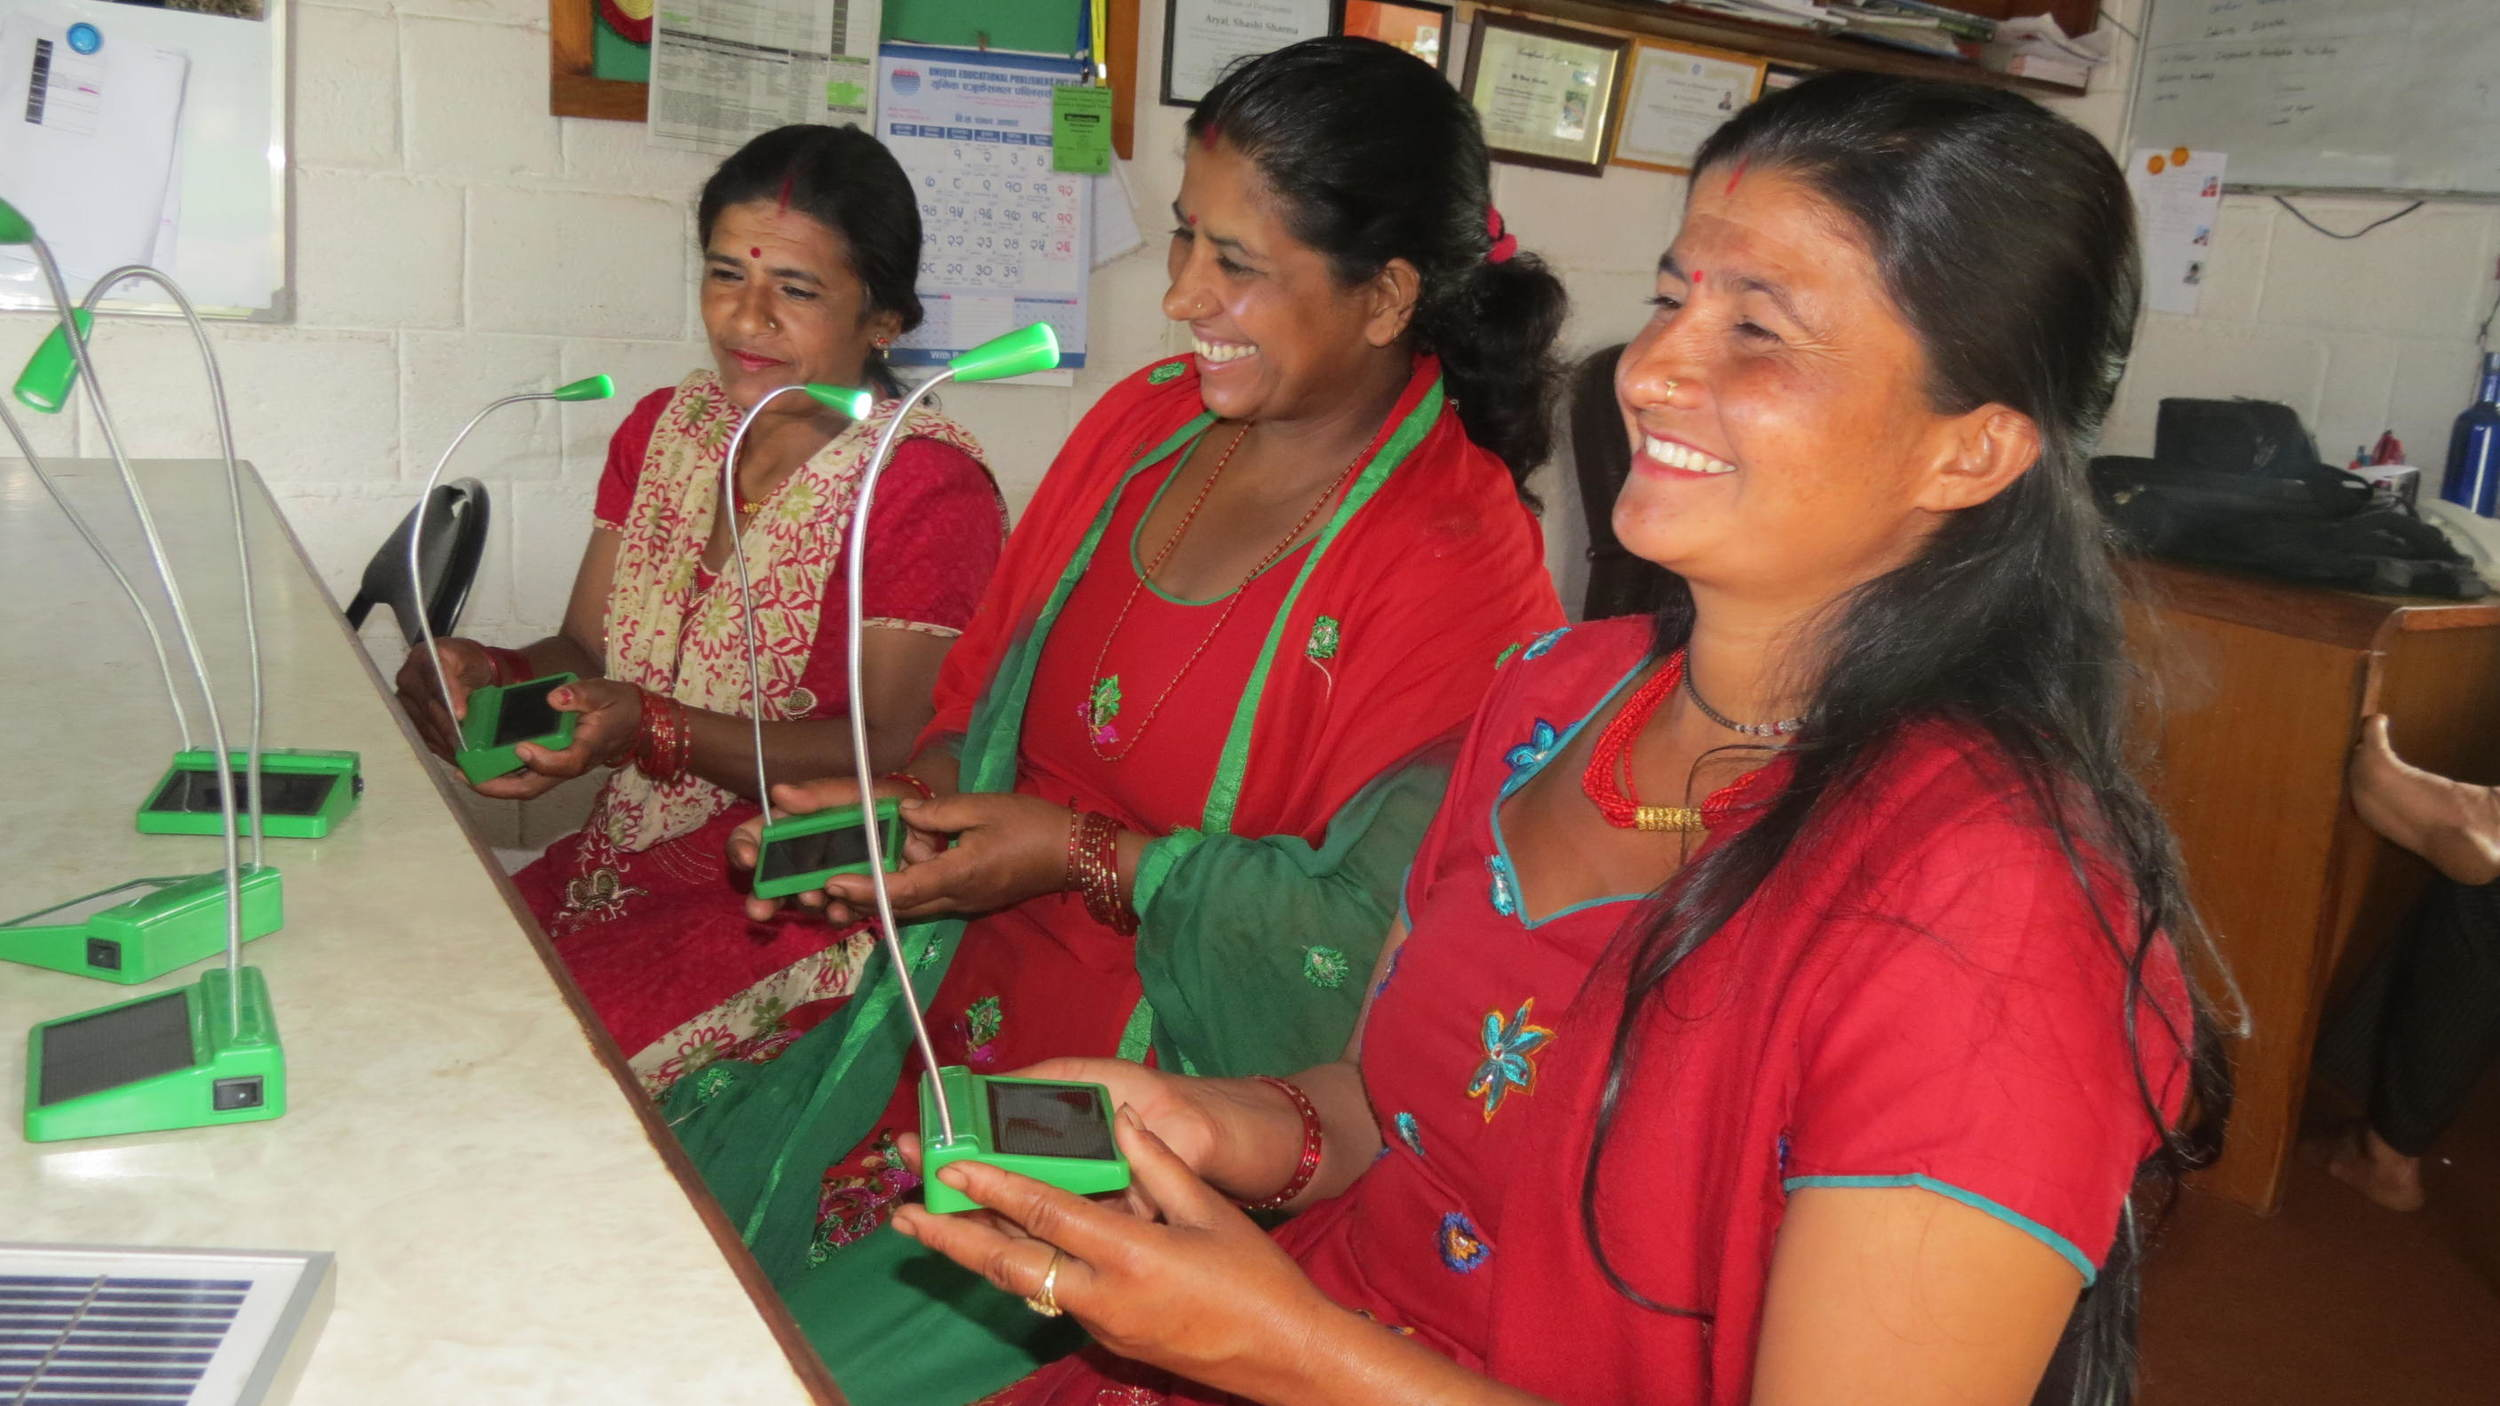 mothers of Anjana, Nirupa and Sajani observing solar lights with curiosity.JPG